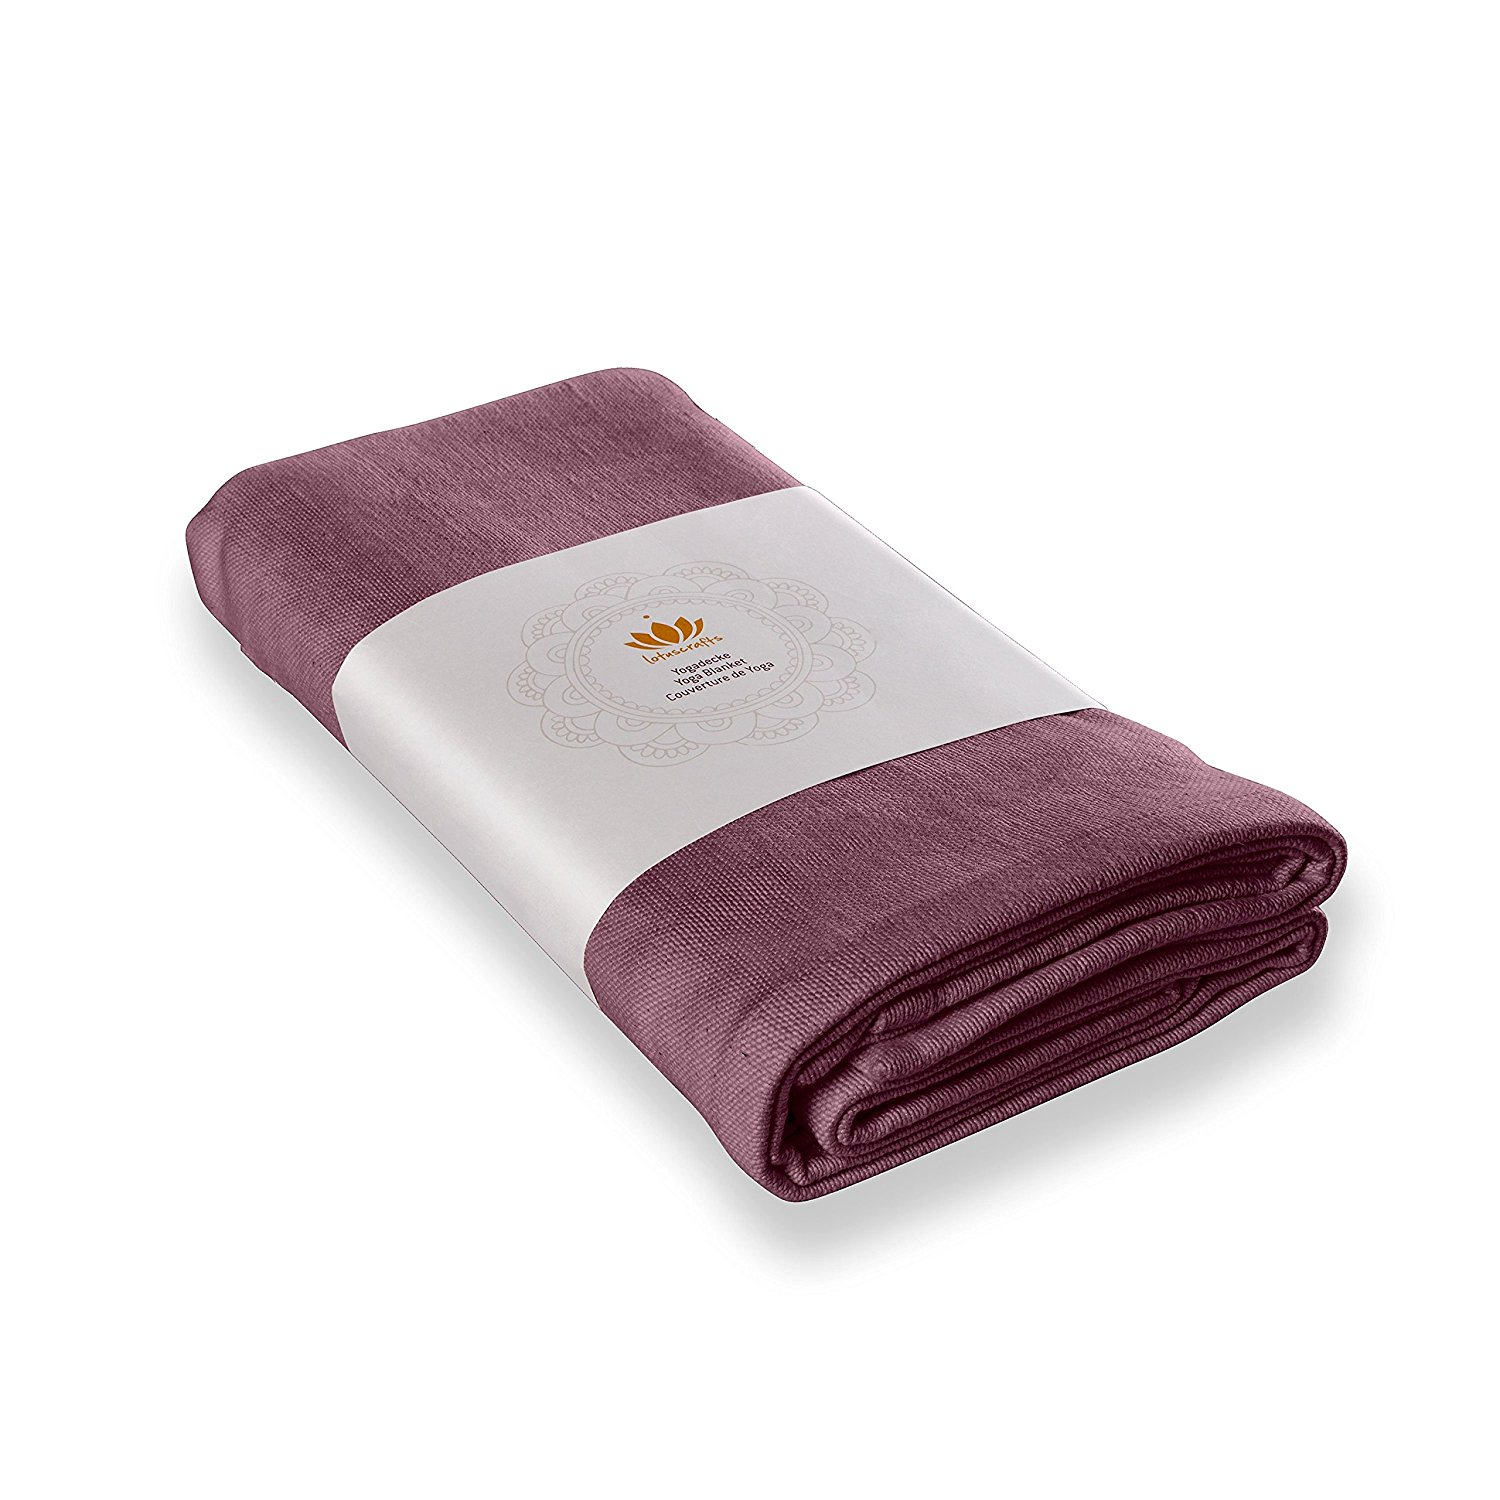 LOTUSCRAFTS - Couverture de yoga « Savasana » coton